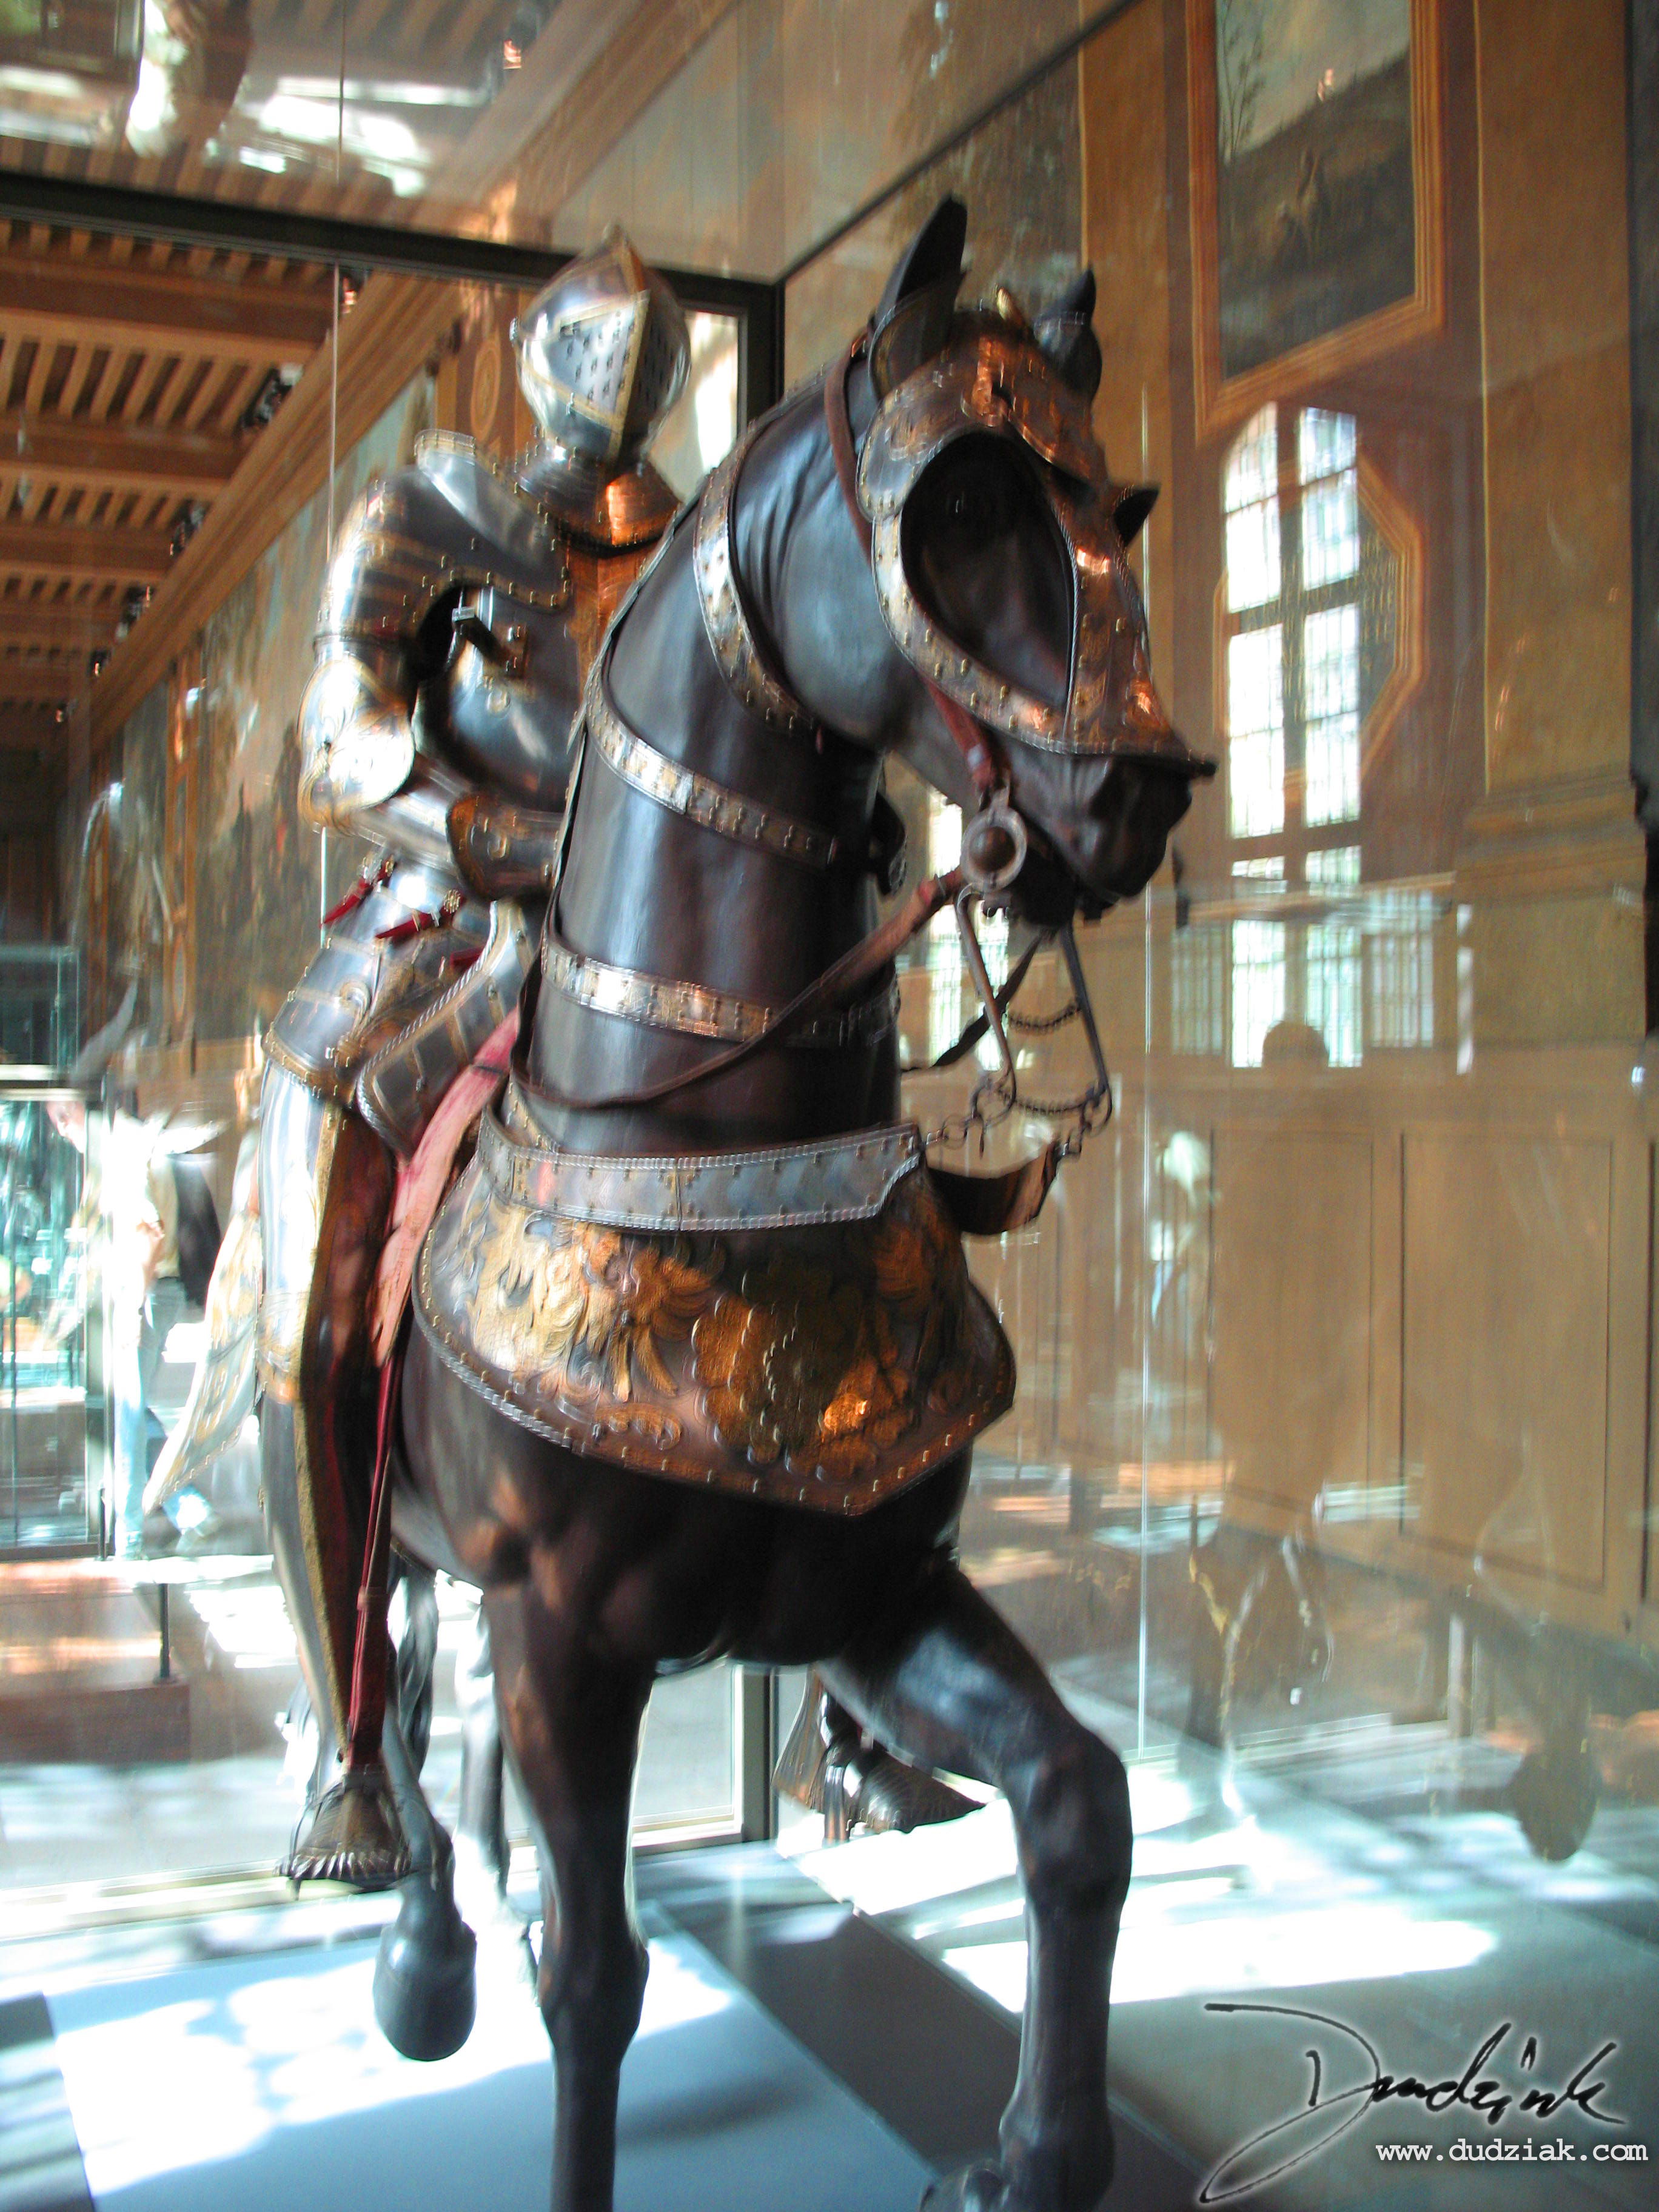 knight,  Les Invalides,  Paris France,  Military Museum,  french knight